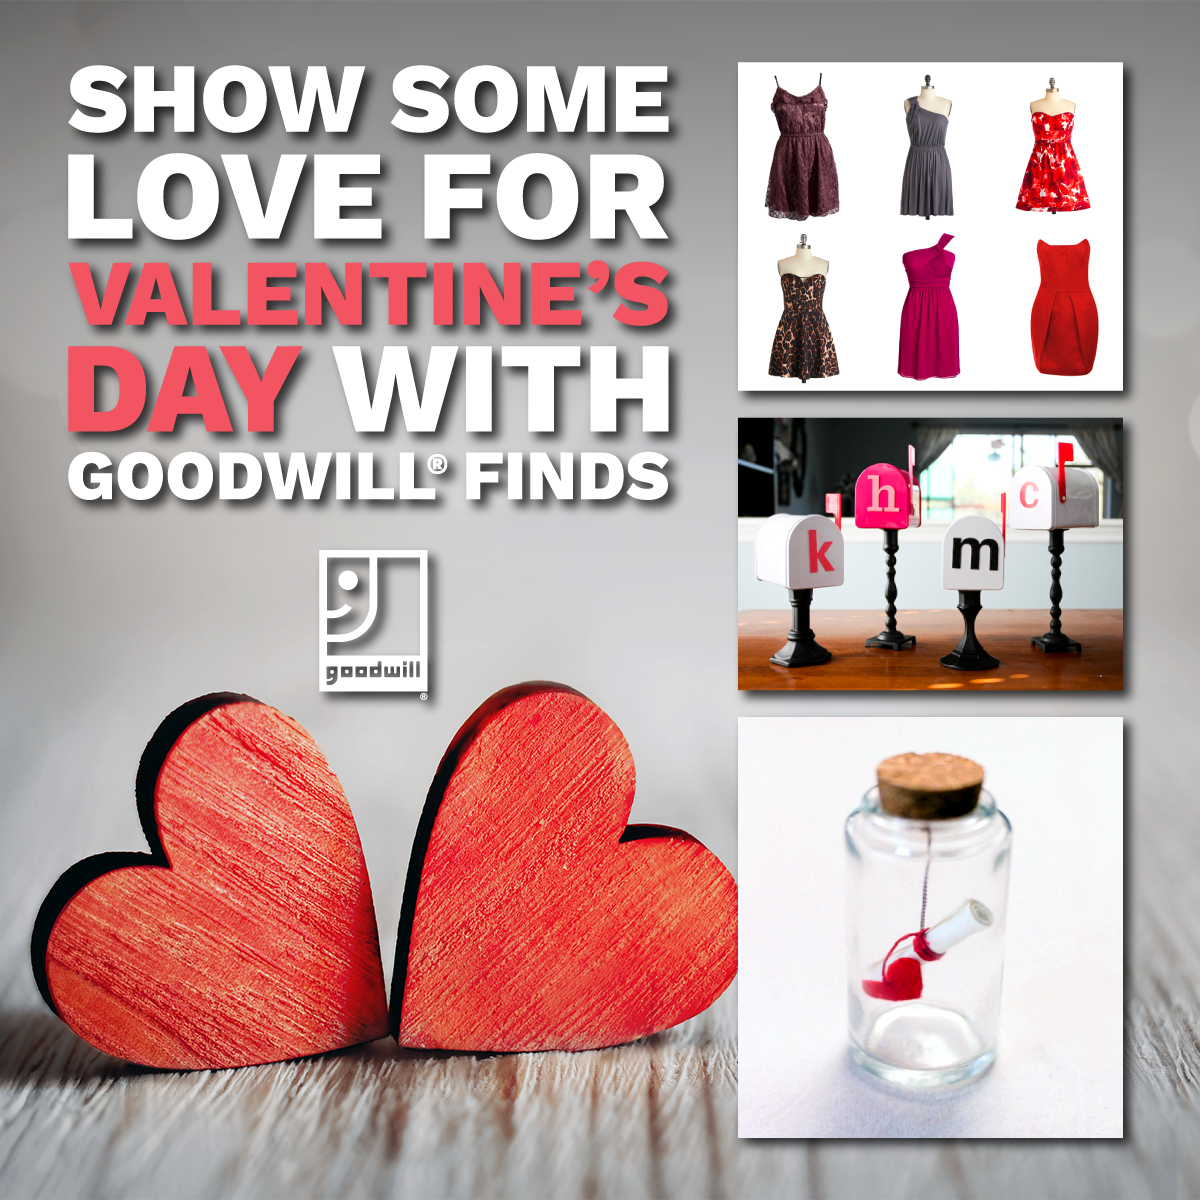 Show Some Love for Valentine's Day with Goodwill